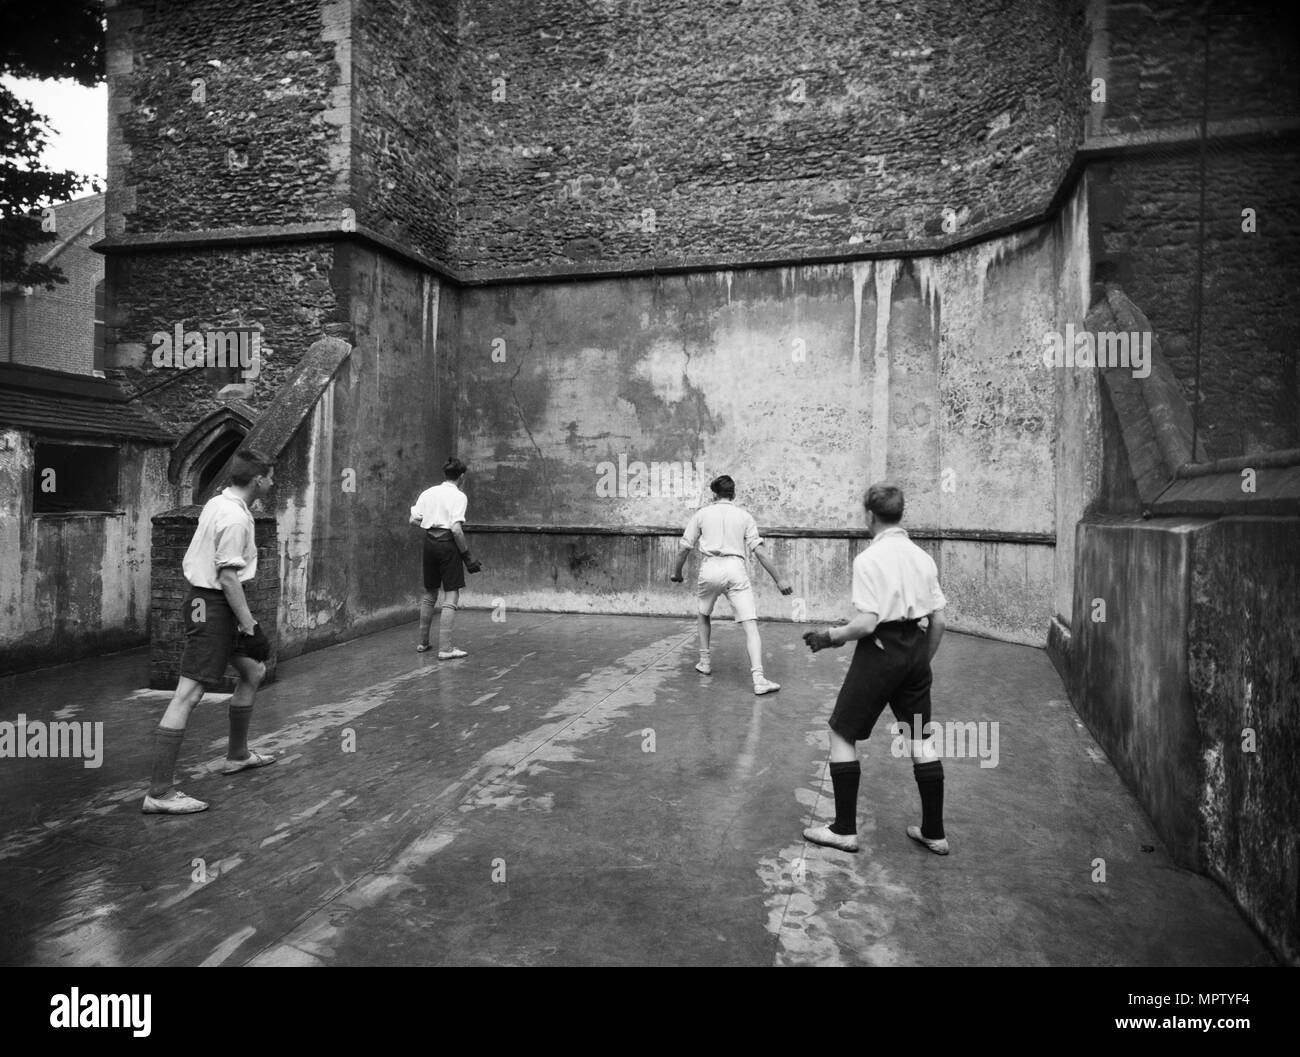 Playing fives, King's School, Ely, Cambridgeshire, 1920-1939. Artist: Marshall Keene and Company. - Stock Image